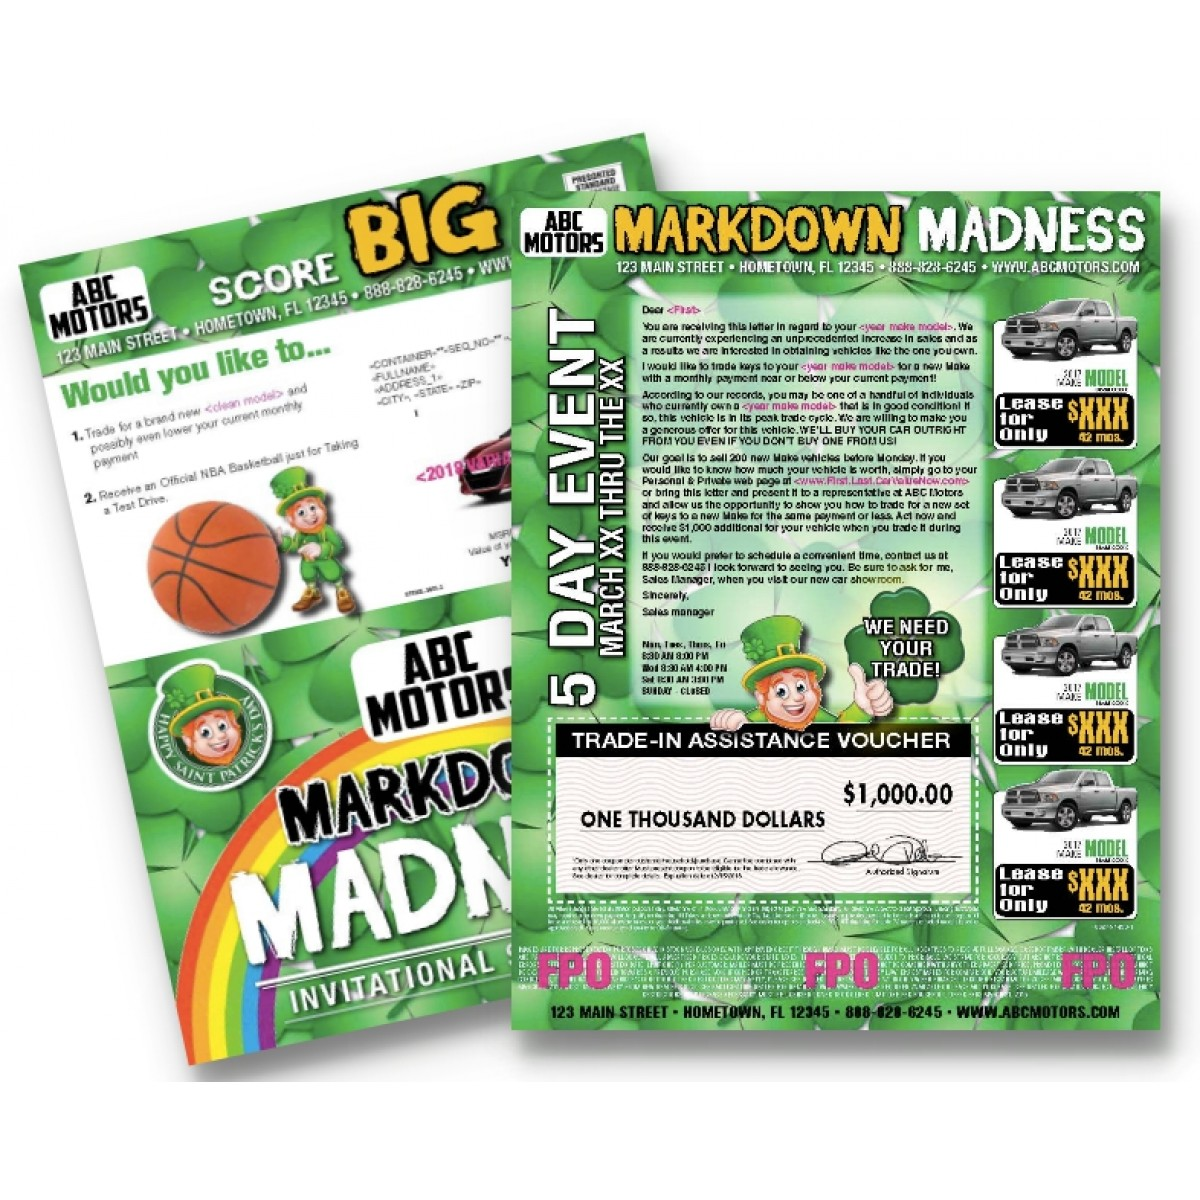 St Patricks Day, March Madness Automotive Direct Mail Campaign